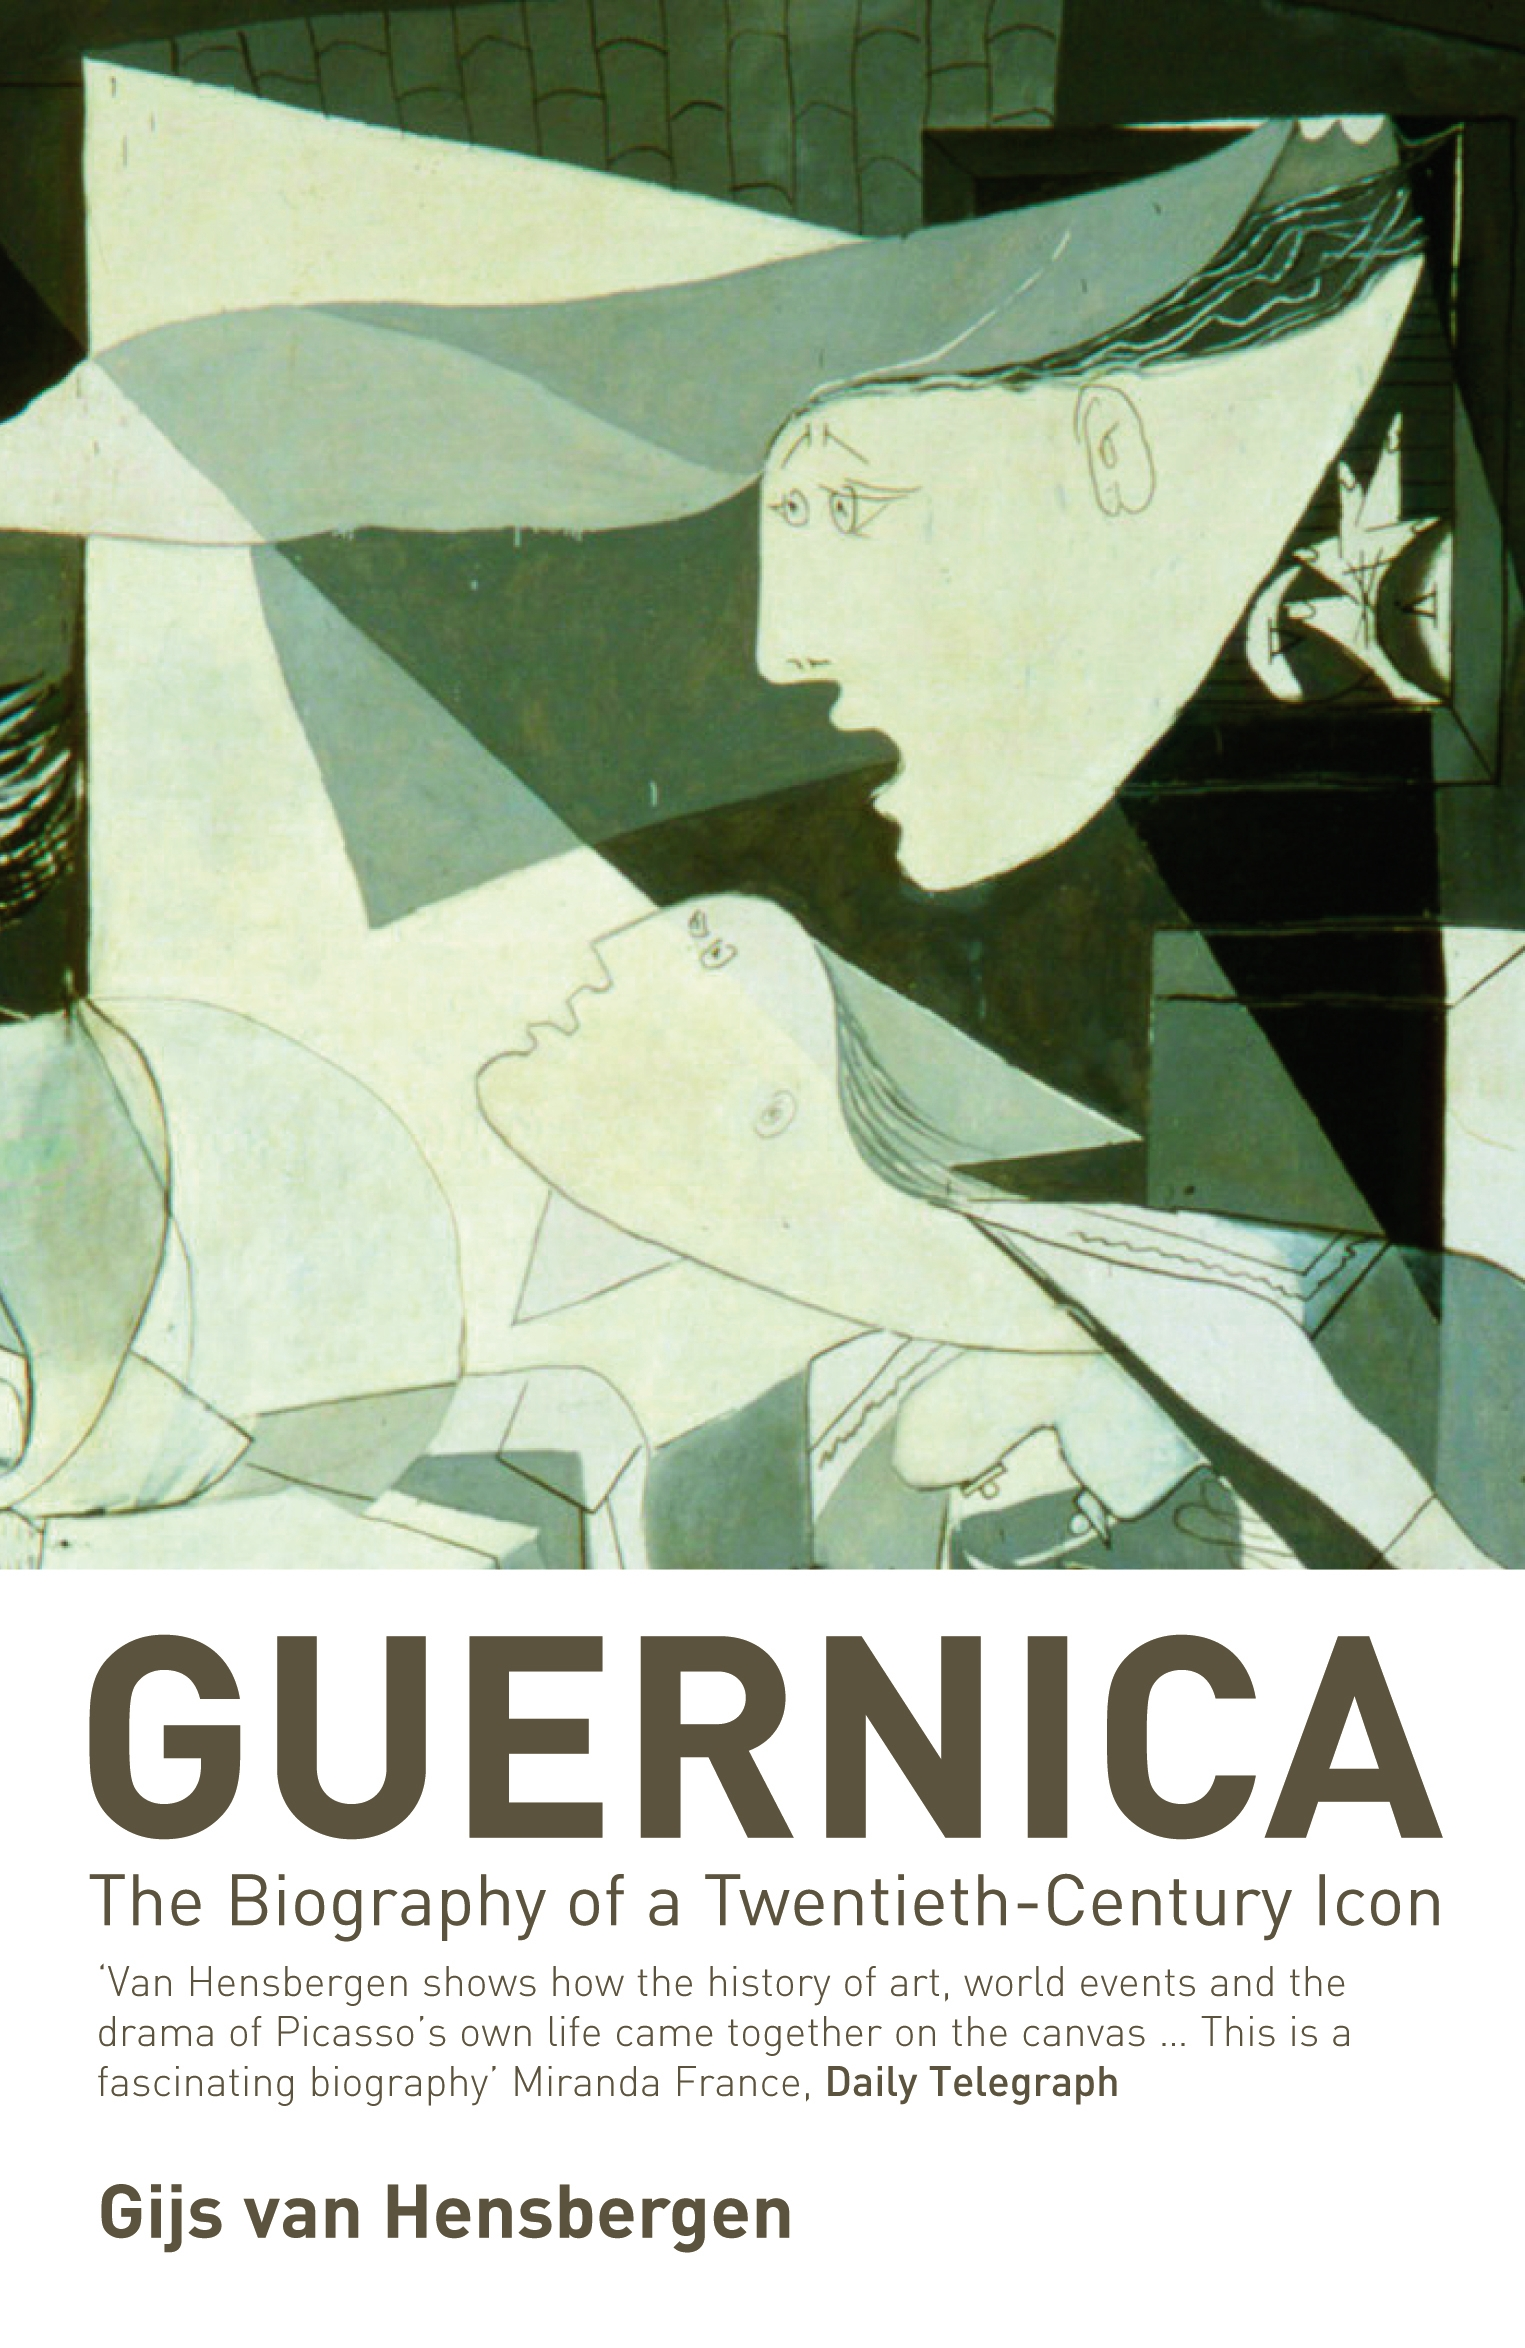 Guernica The Biography of a Twentieth-Century Icon